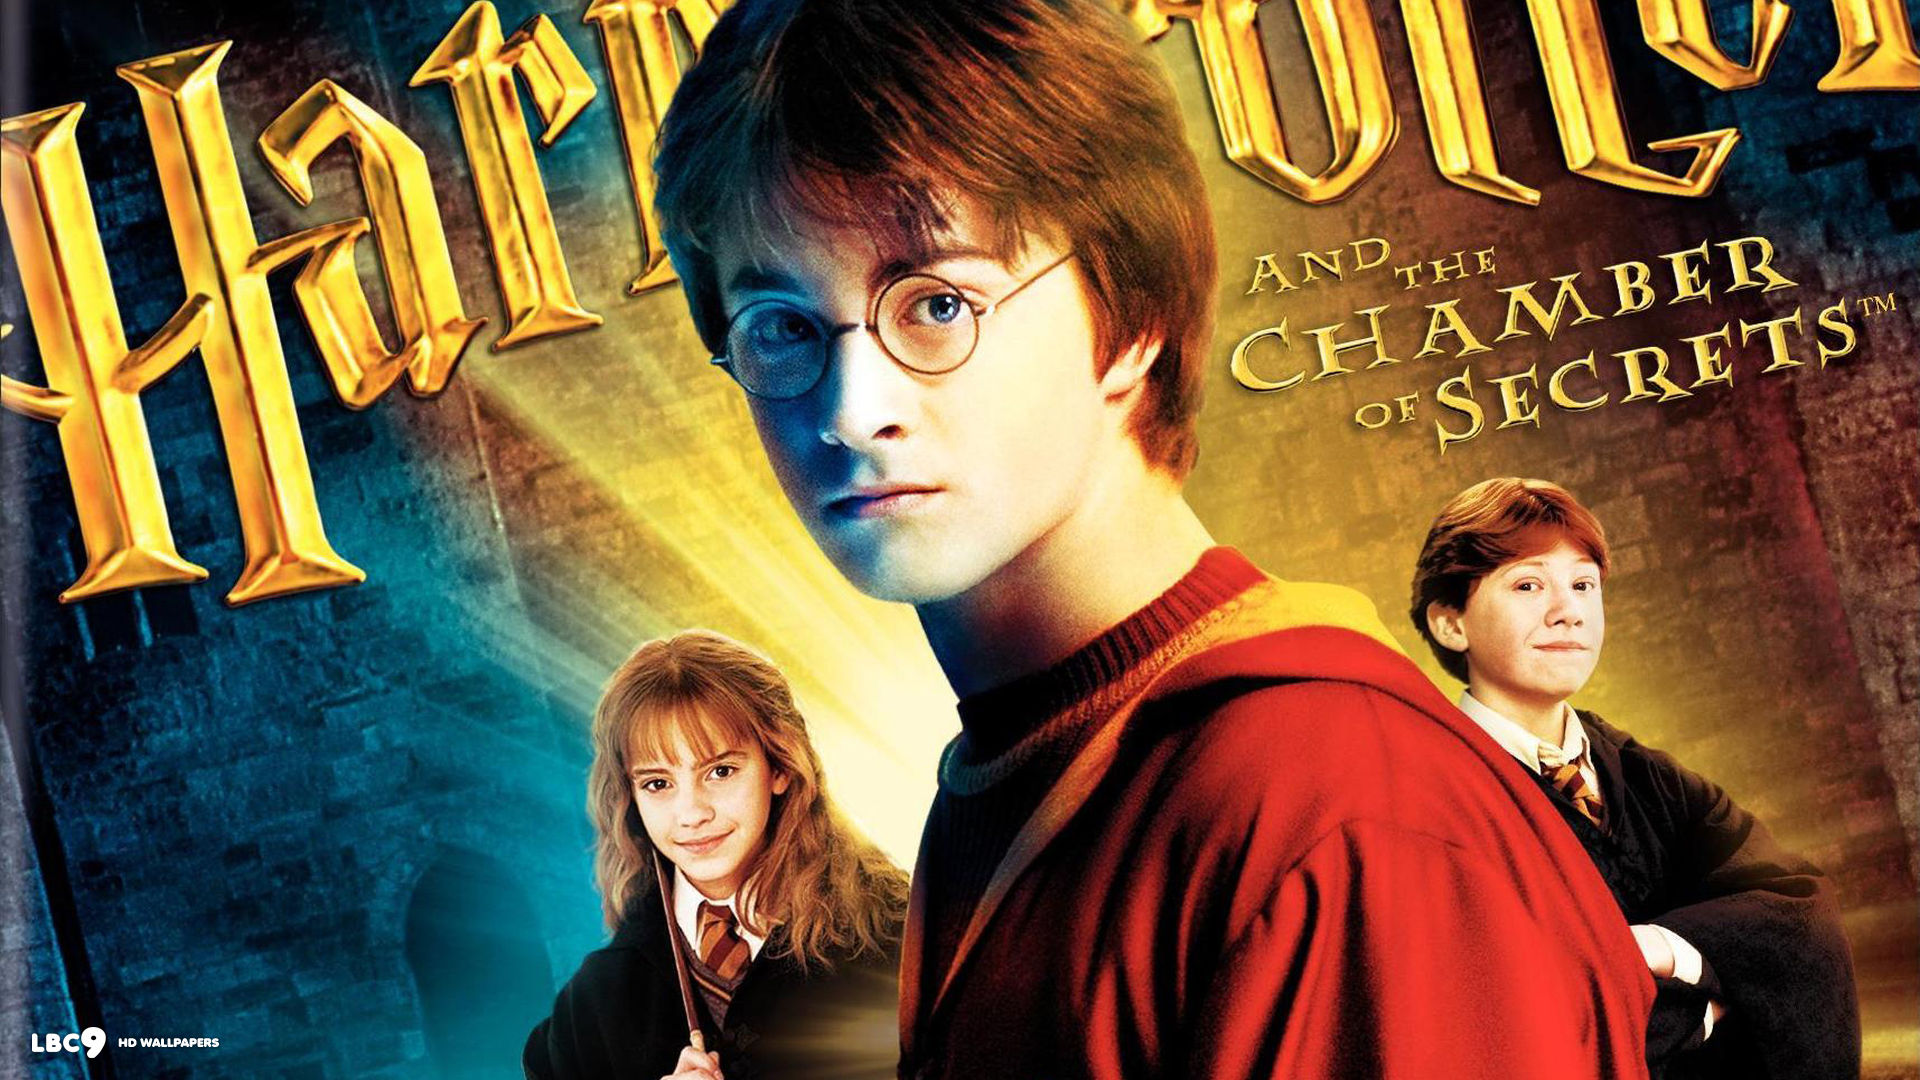 potter and the chamber of secrets wallpaper 45 movie hd backgrounds 1920x1080